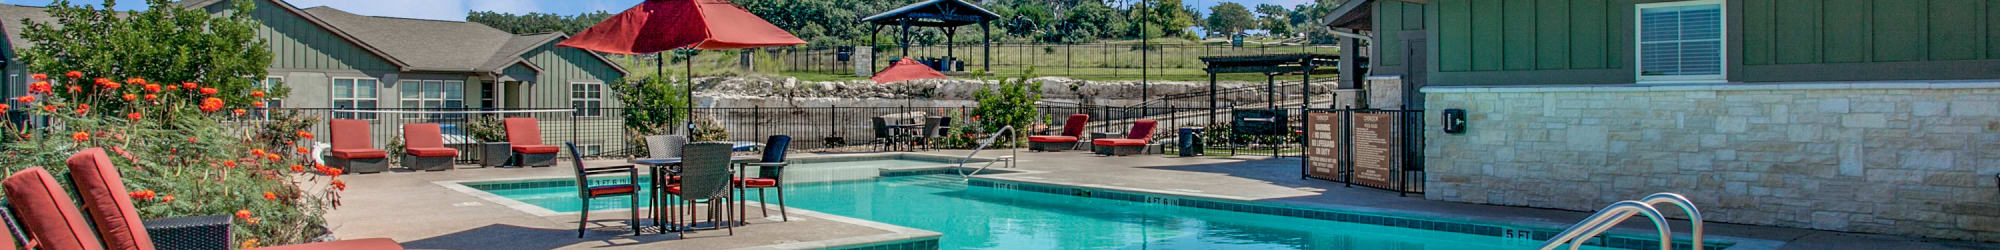 Schedule a tour at Overlook at Stone Oak Park in San Antonio, Texas